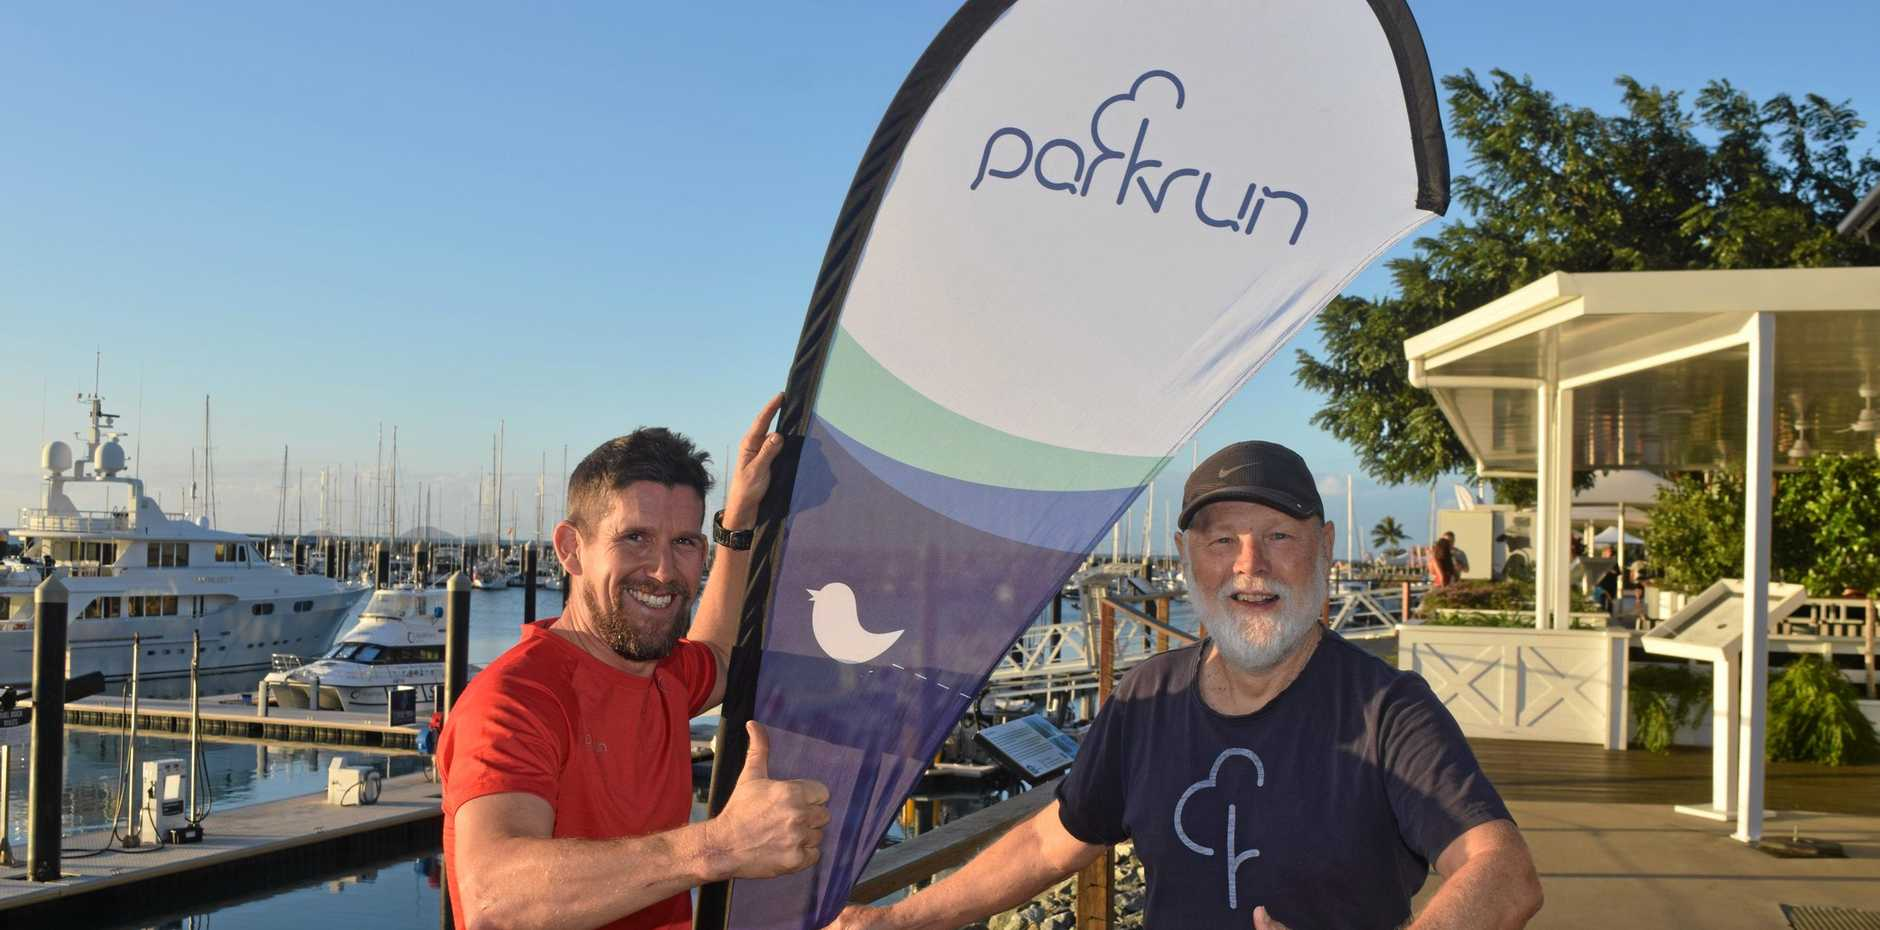 MILESTONE: Airlie Beach Parkrun event directors Justin Gray-Knight and Bob Barford are looking forward to the 200th Airlie Beach parkrun on Saturday.